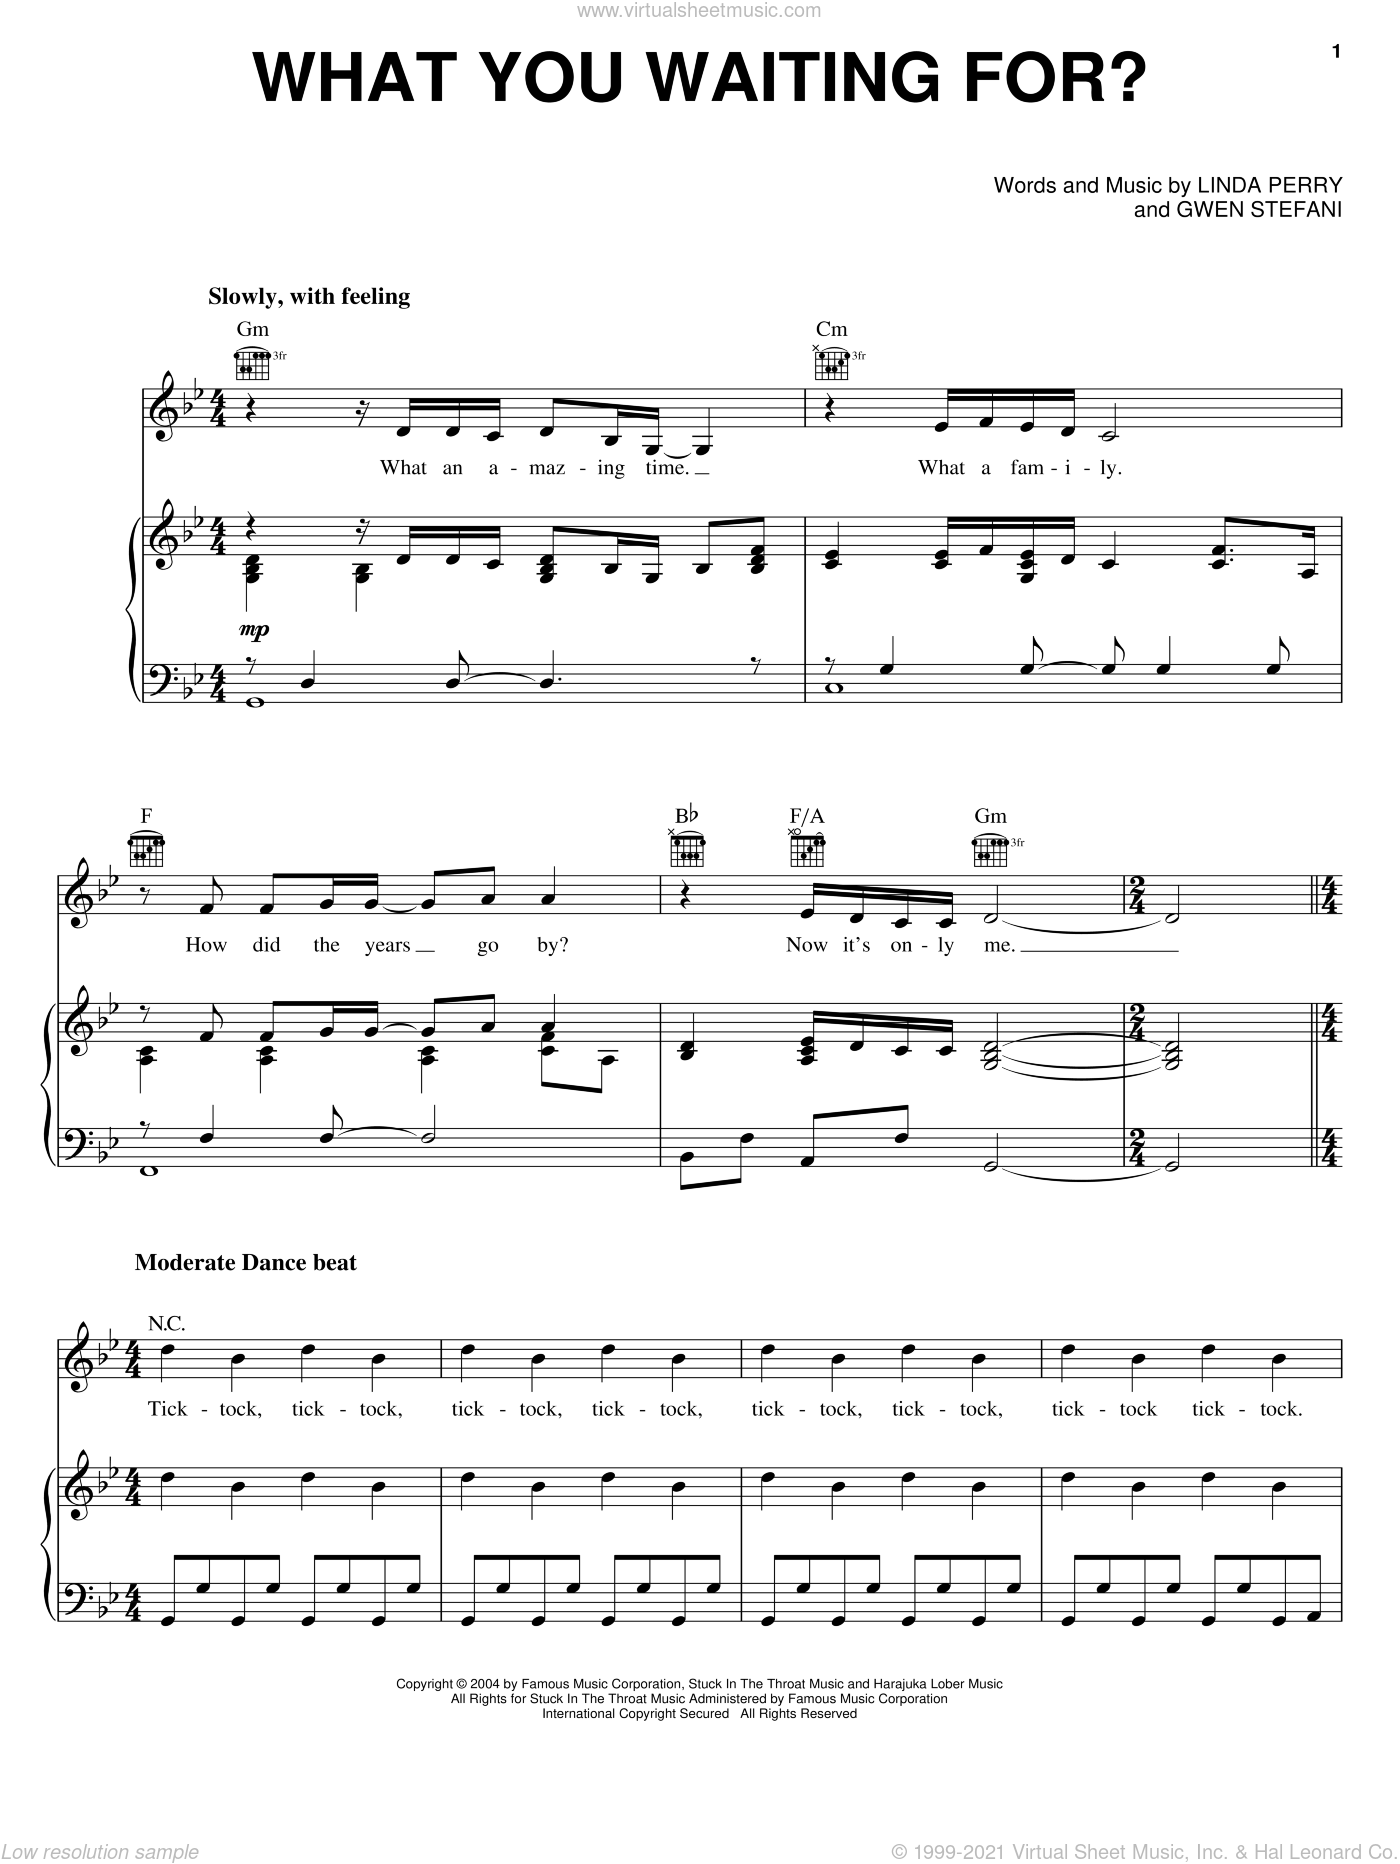 What You Waiting For? sheet music for voice, piano or guitar by Linda Perry